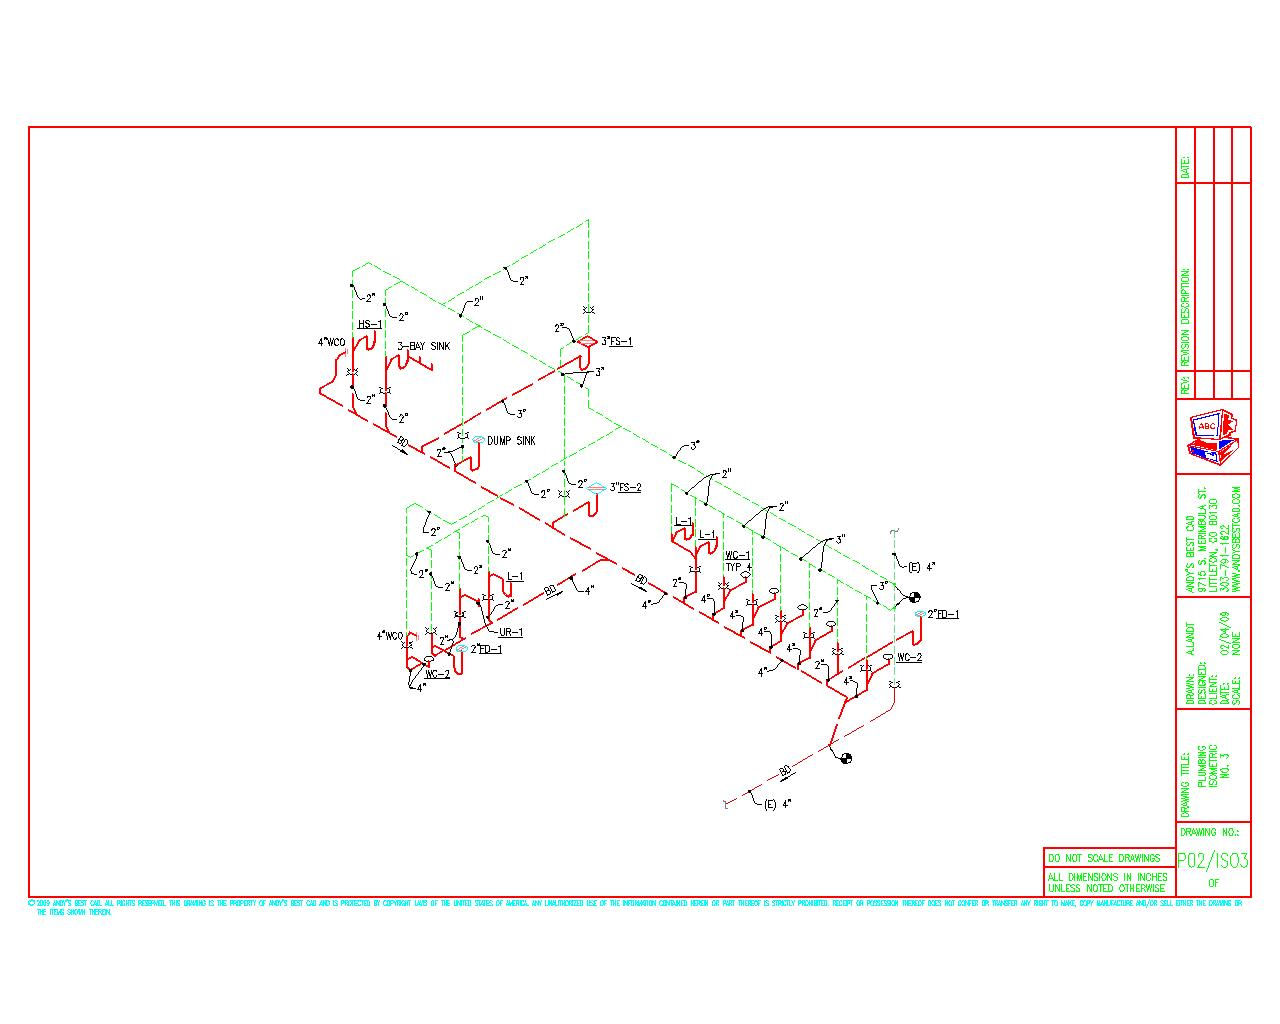 1280x1024 AutoCAD Plumbing Drafting Samples